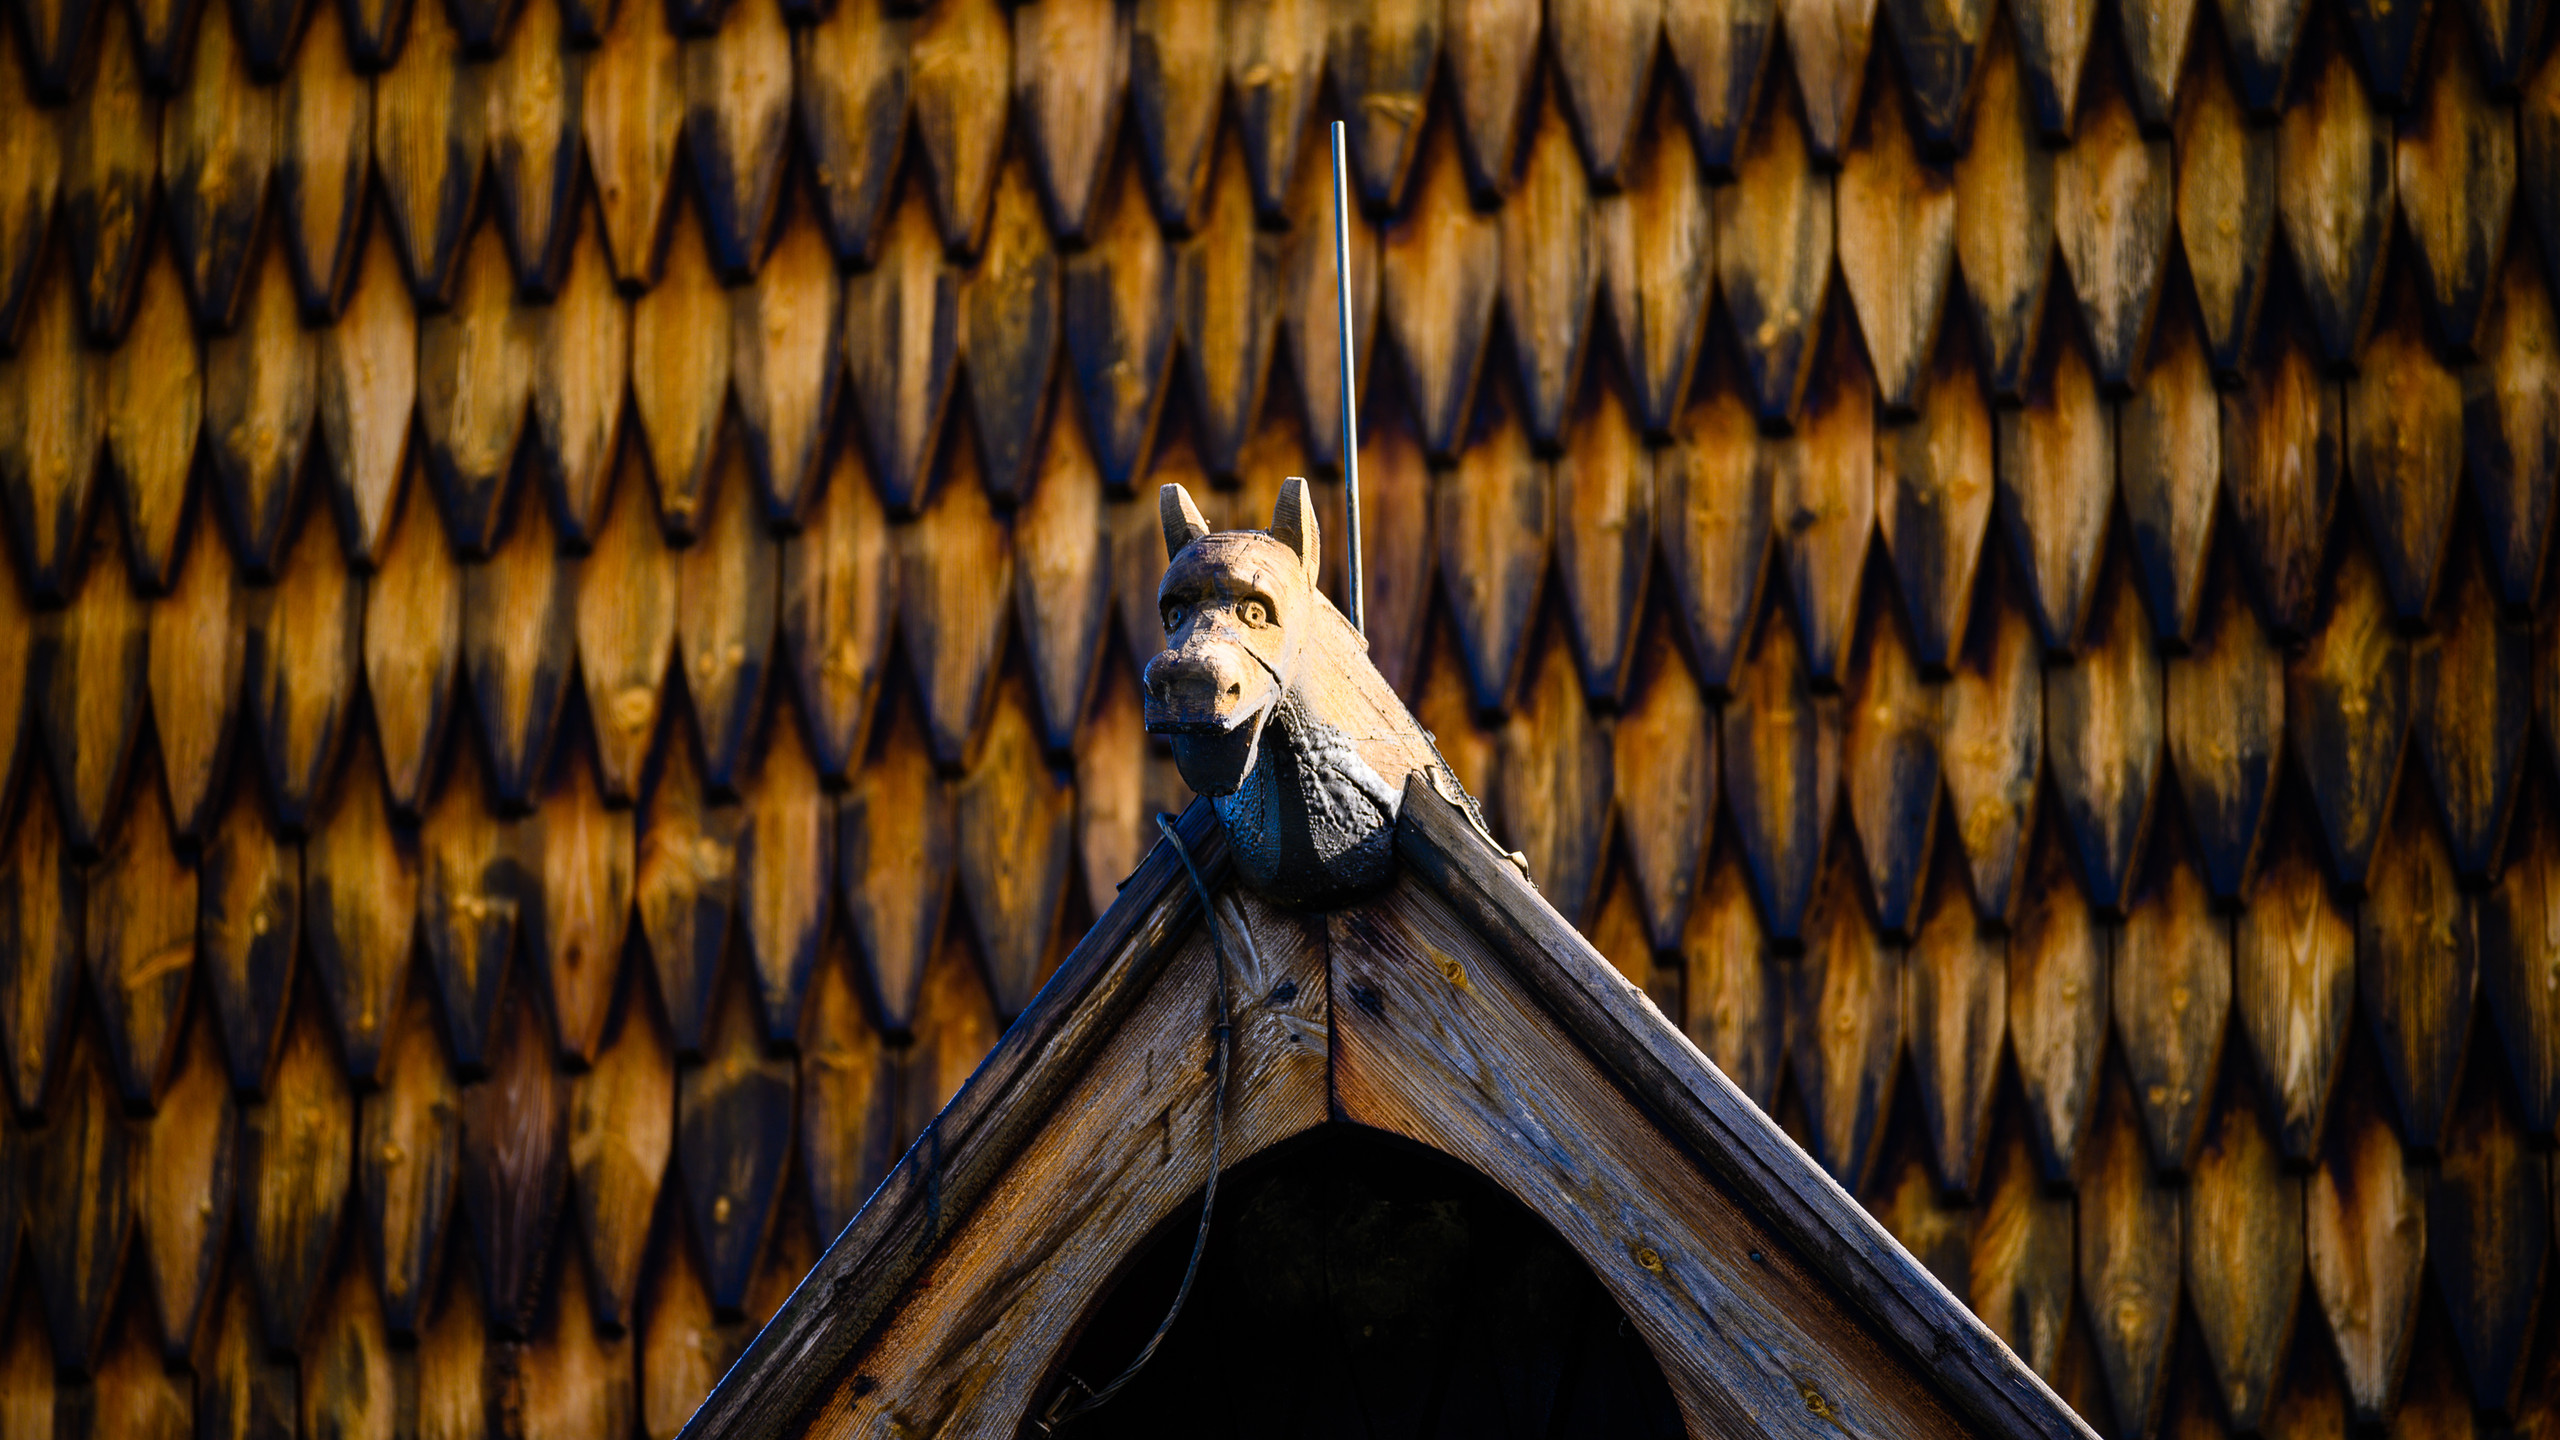 Carved wooden figure on Heddal Stave Church, Norway